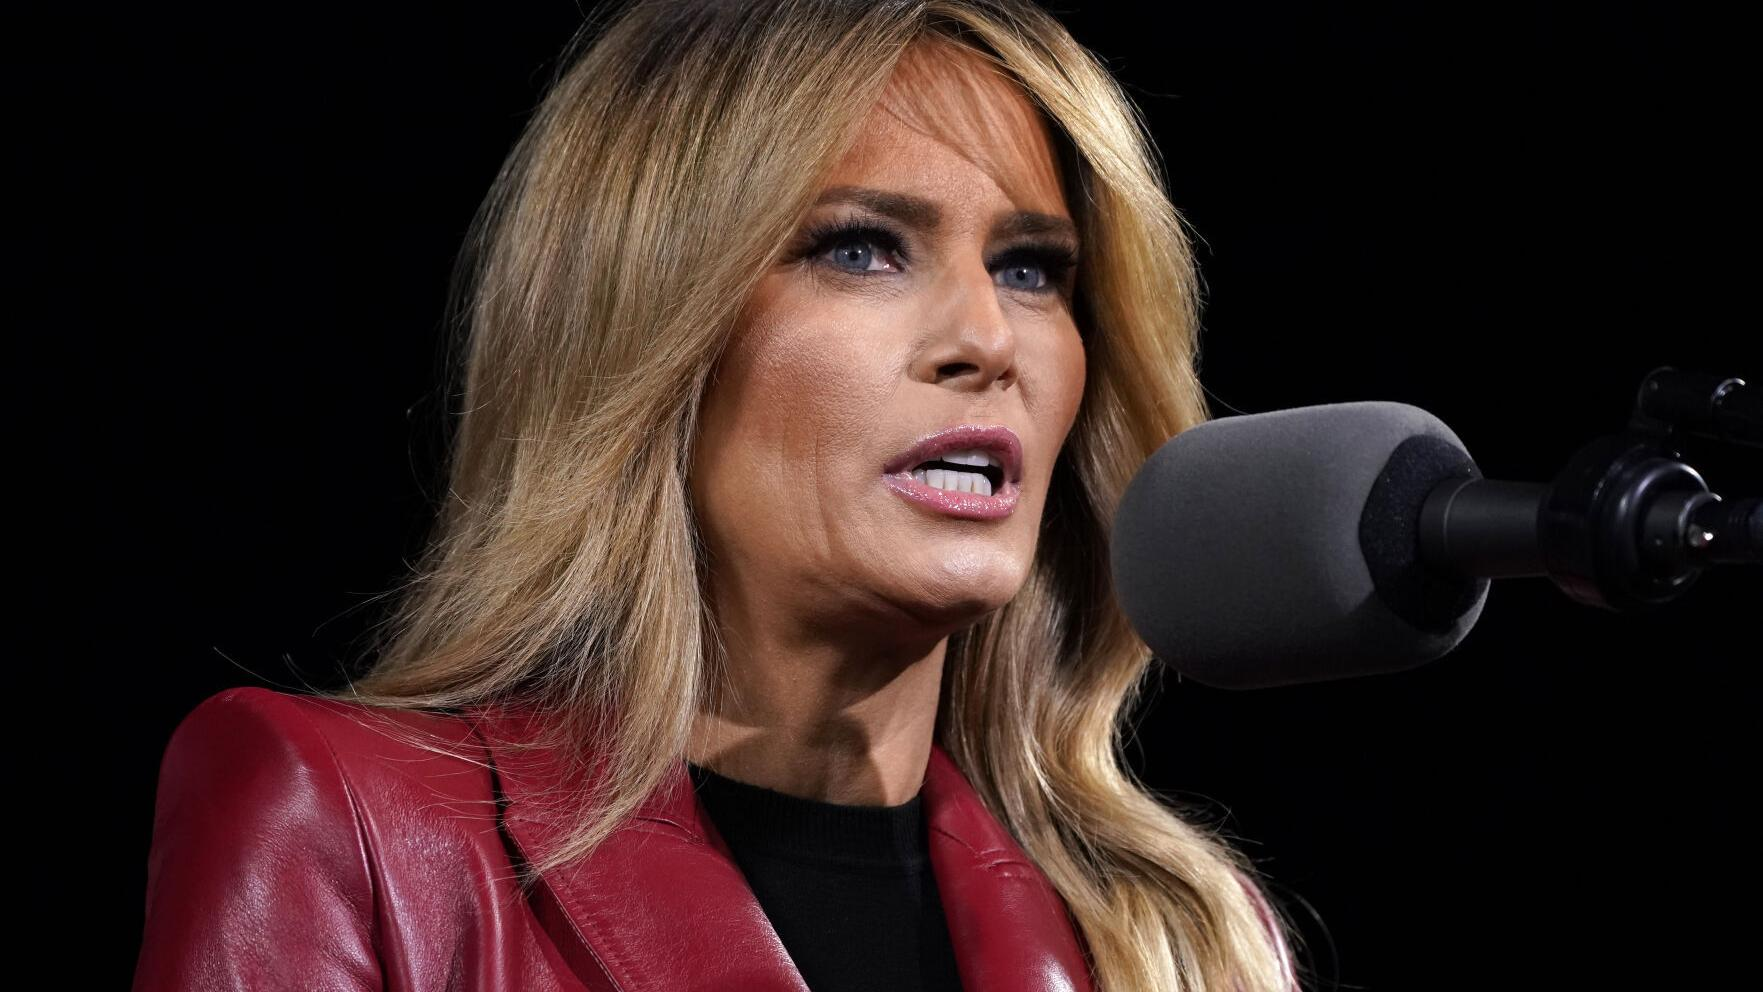 Read for yourself: Melania Trump breaks silence on Capitol riots